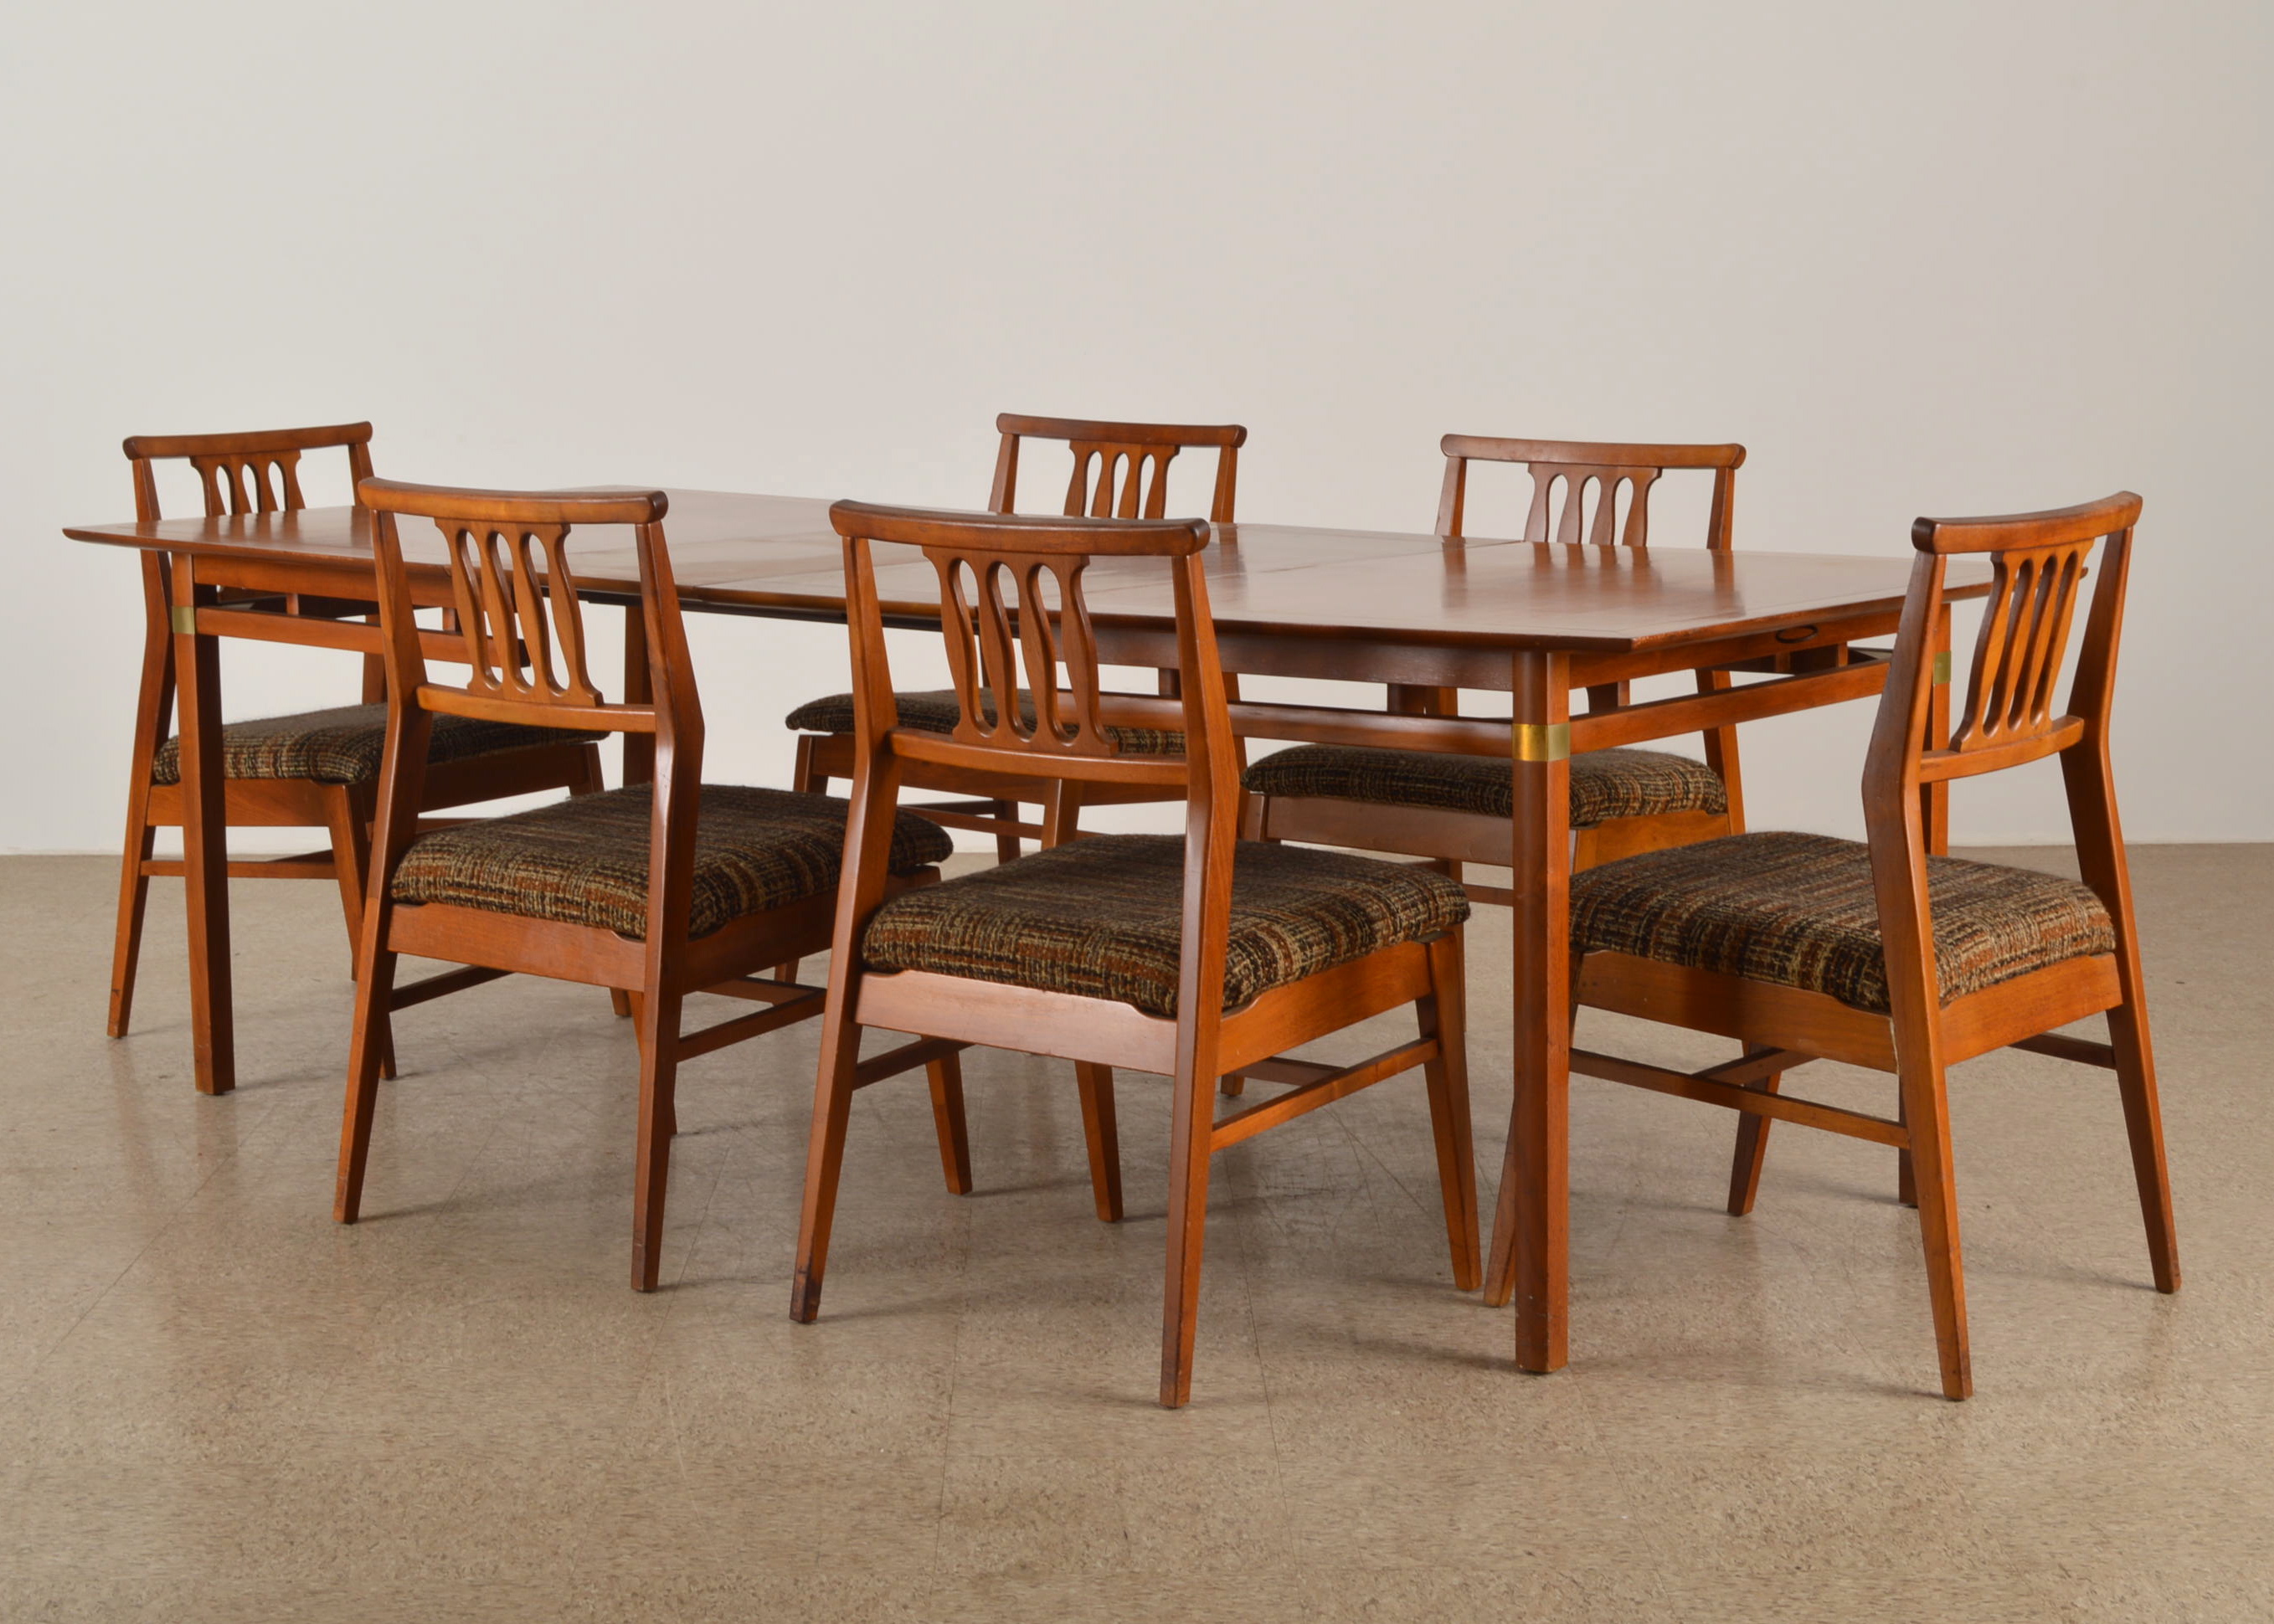 teak dining chairs indoor photo - 6